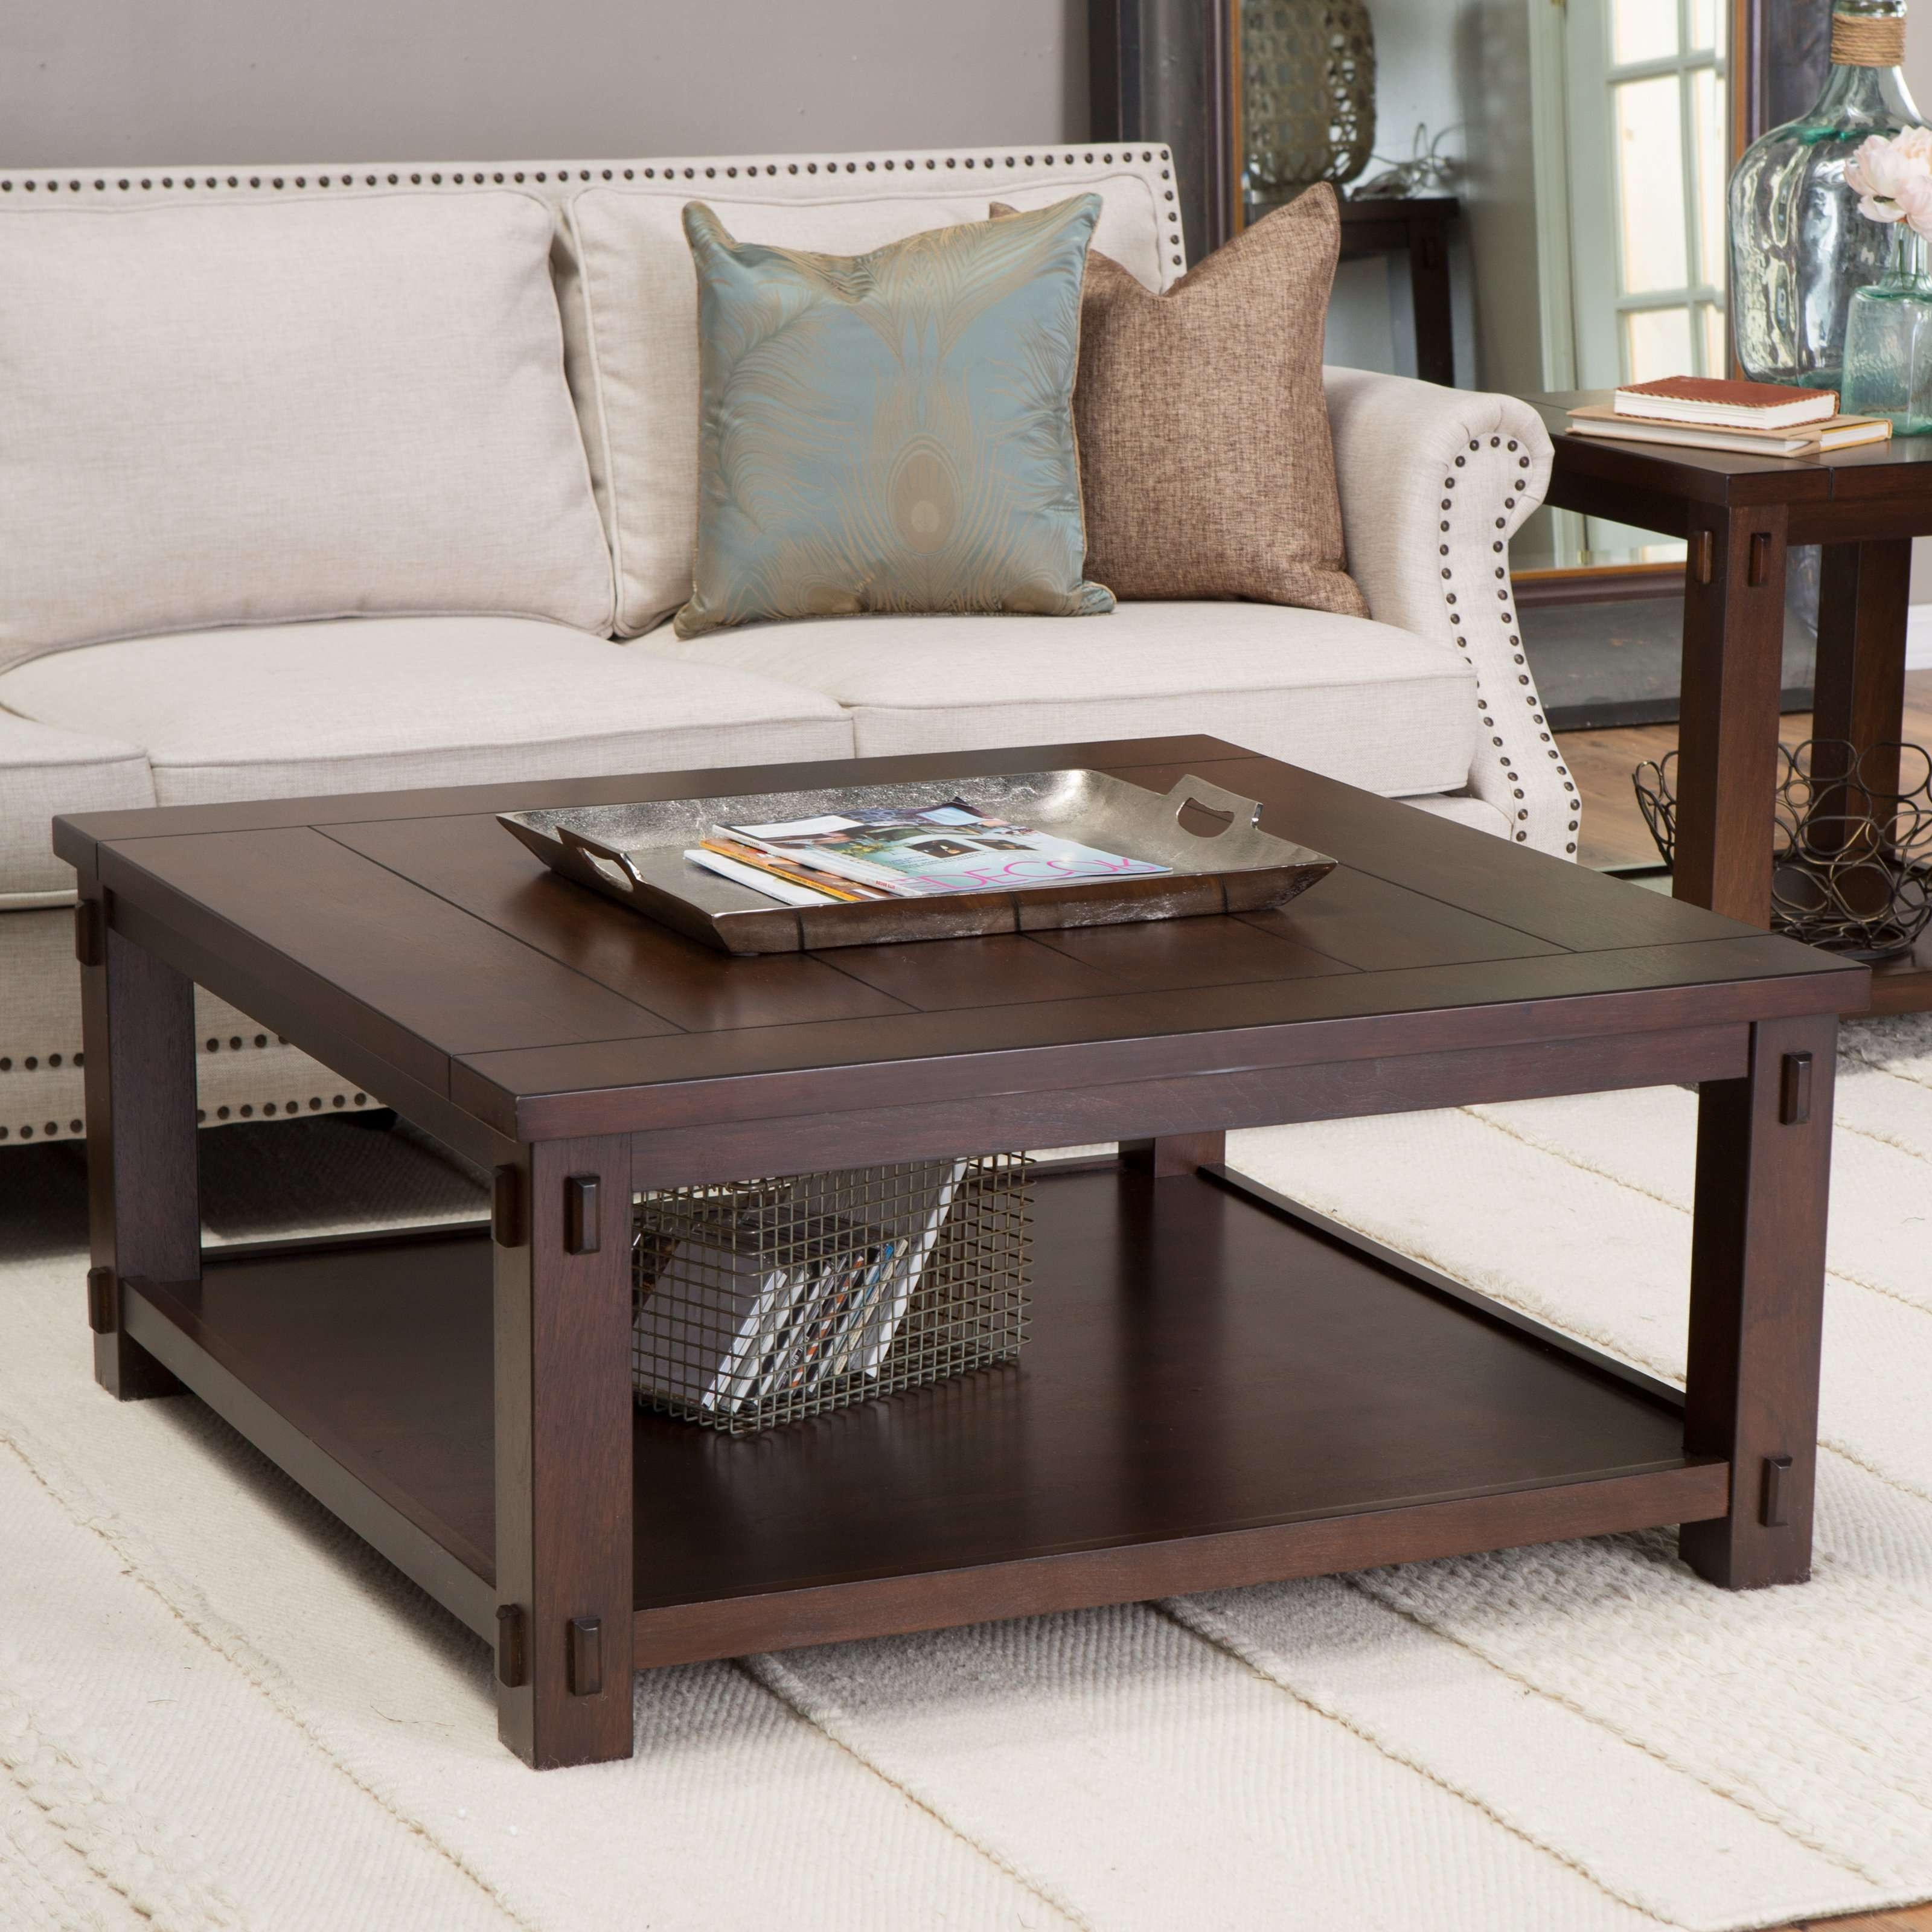 Coffee Tables : Large Round Coffee Table White Square Glass And With 2017 Square Dark Wood Coffee Tables (View 7 of 20)